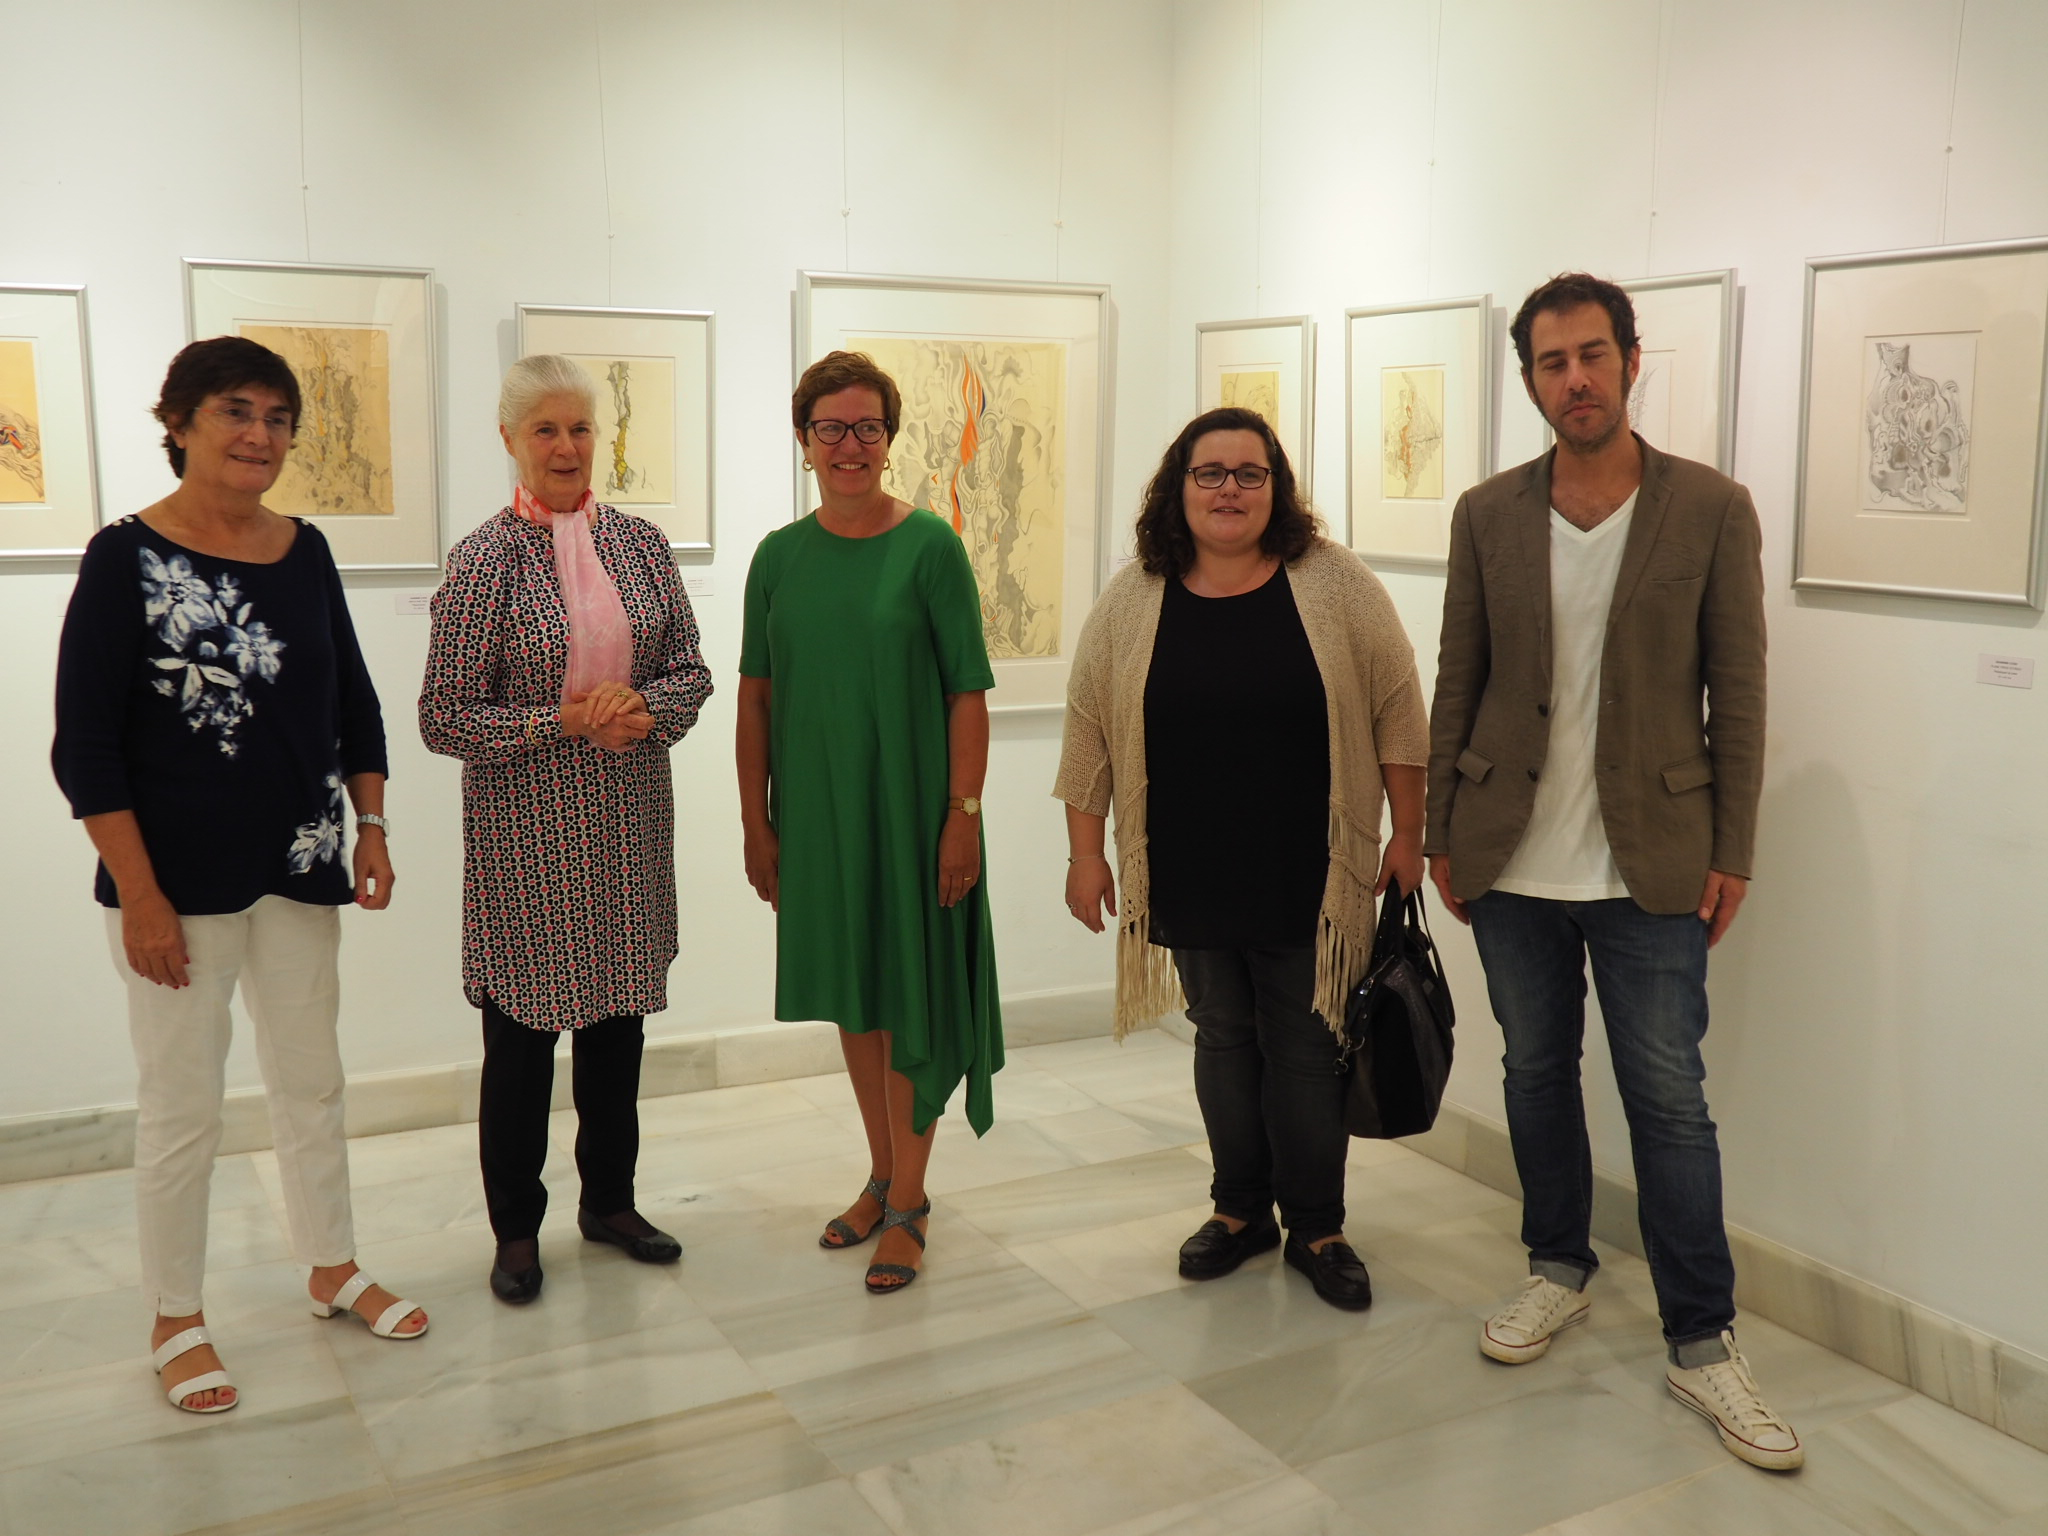 l to r. President and Vice President of the Barceló Foundation, Maria Antonia Barceló and Antonia Barceló (with Jeannine between the ladies), together with the representative of the President of the Balearic Government, the Director General of Relations with Parliament, Beatriz Gamundí, and sculptor Gastón Luciano Bonanno who was showing his work separately.